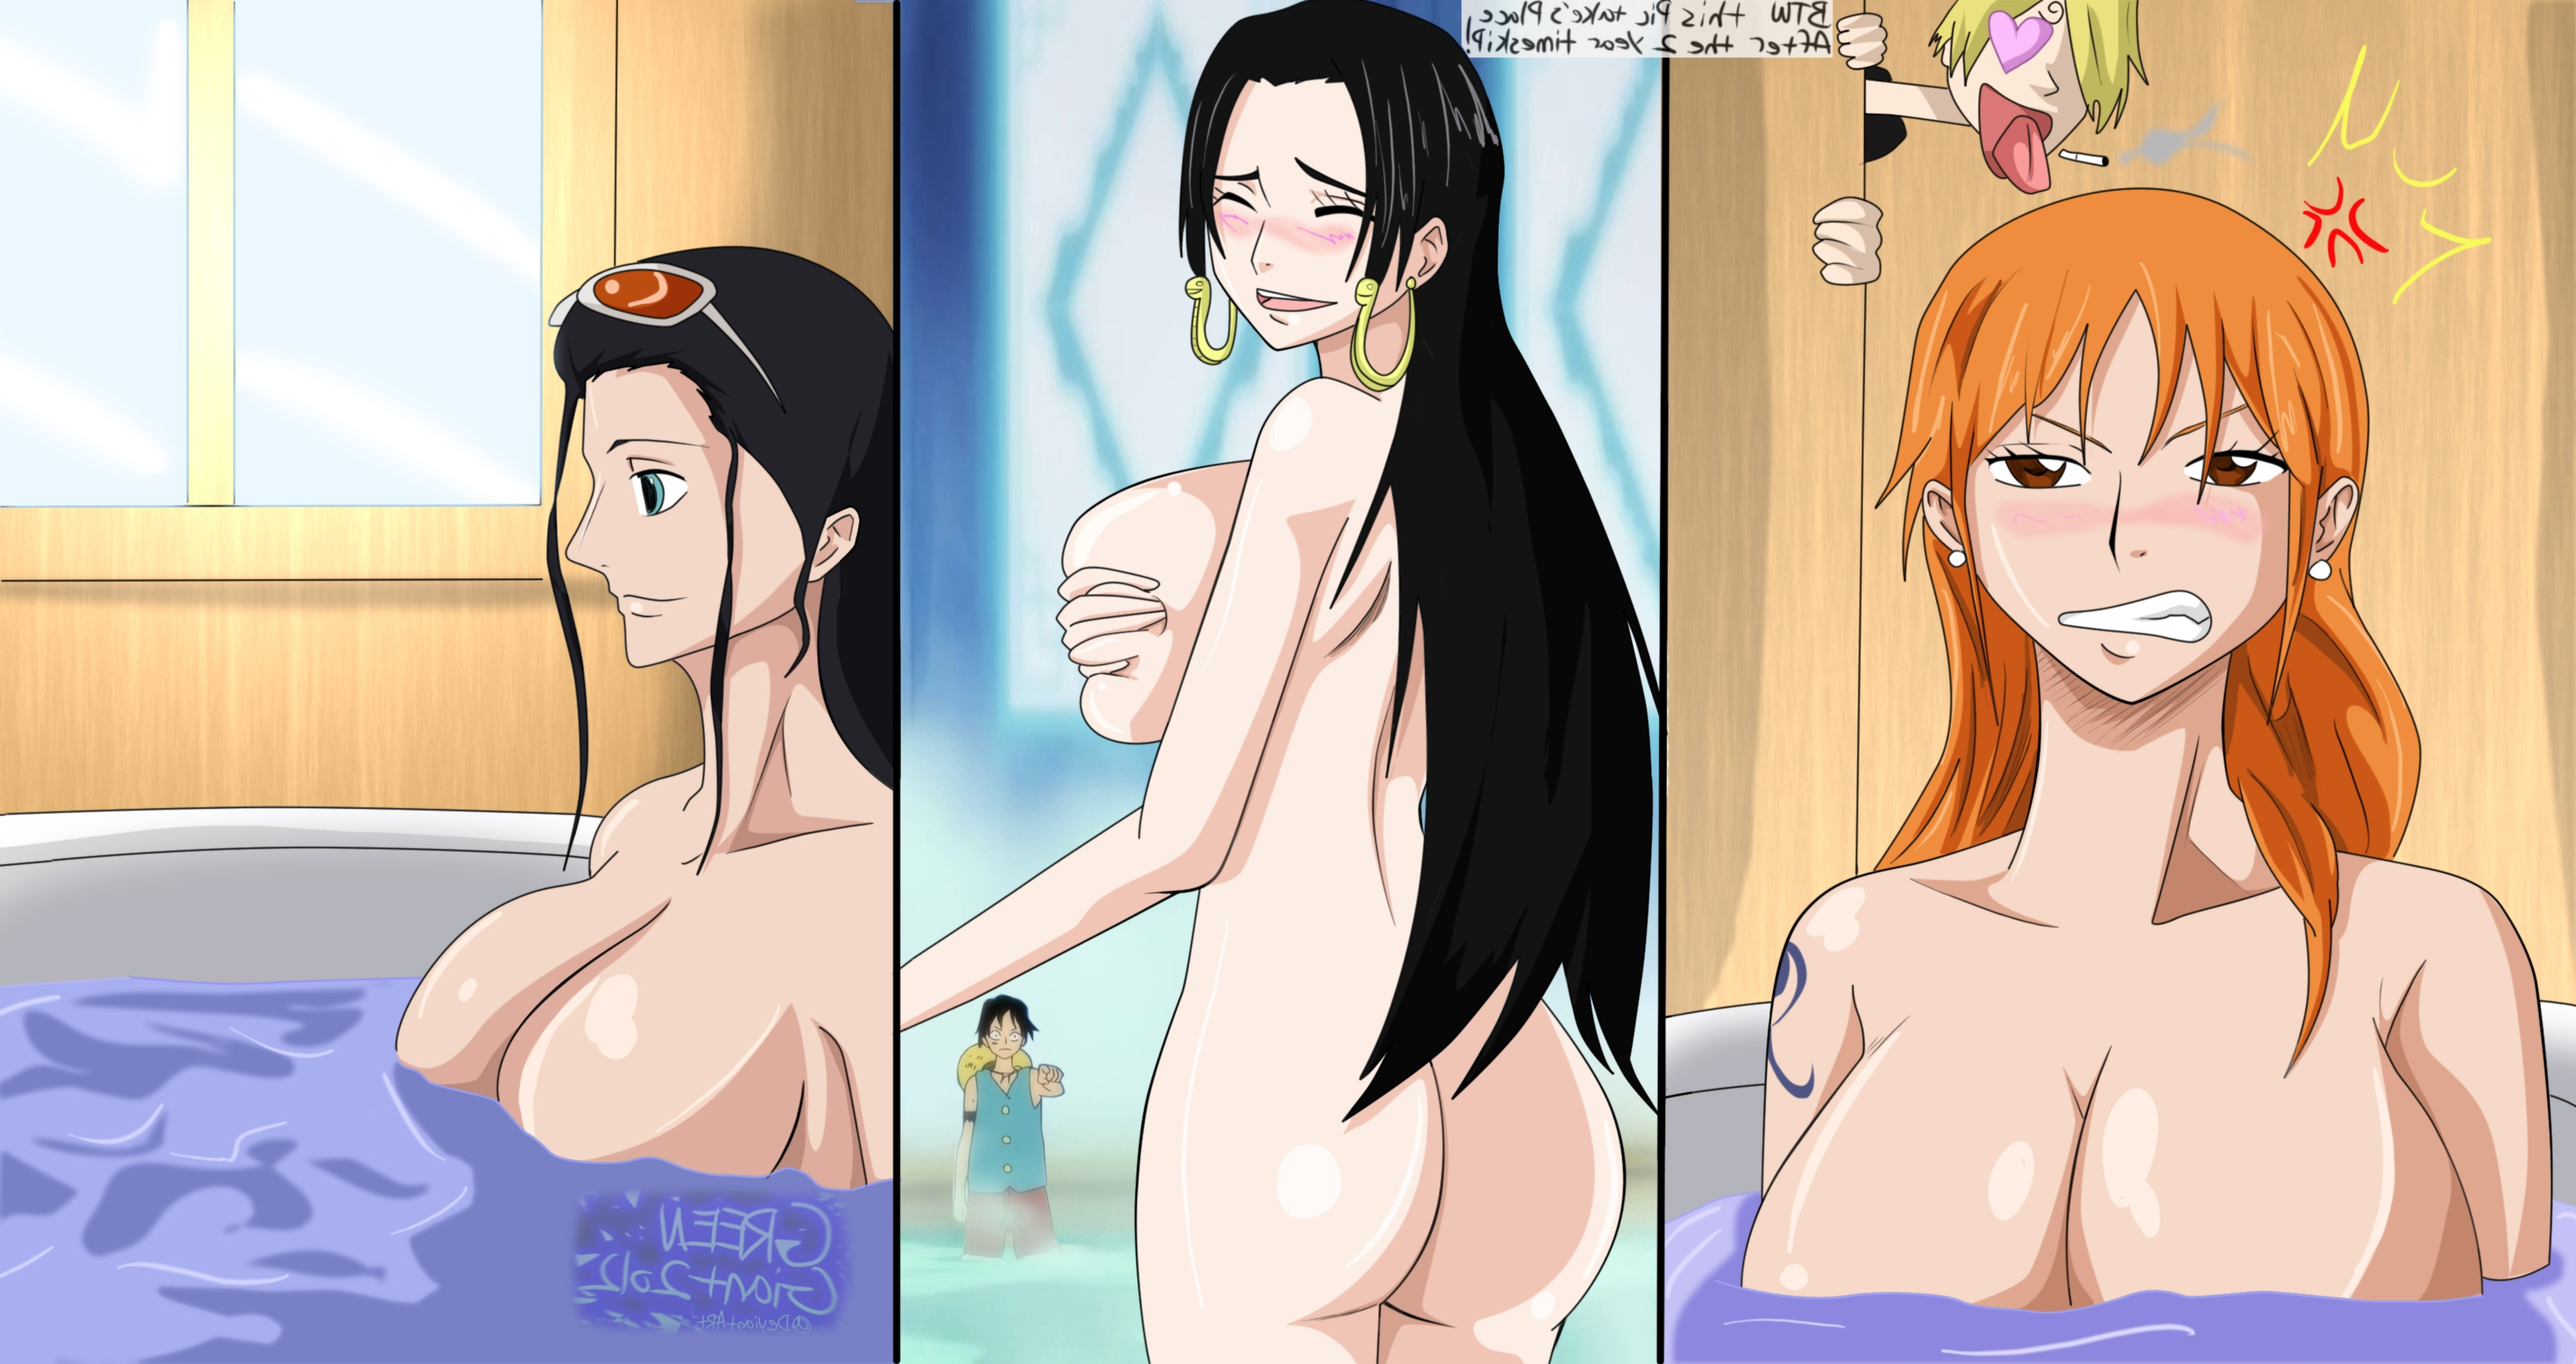 Toon sex pic ##0001301448700 ass bath bathing big breasts black hair boa hancock breasts color female greengiant2012 hair human indoors male monkey d luffy multiple females multiple males nami nico robin nude one piece orange hair sanji